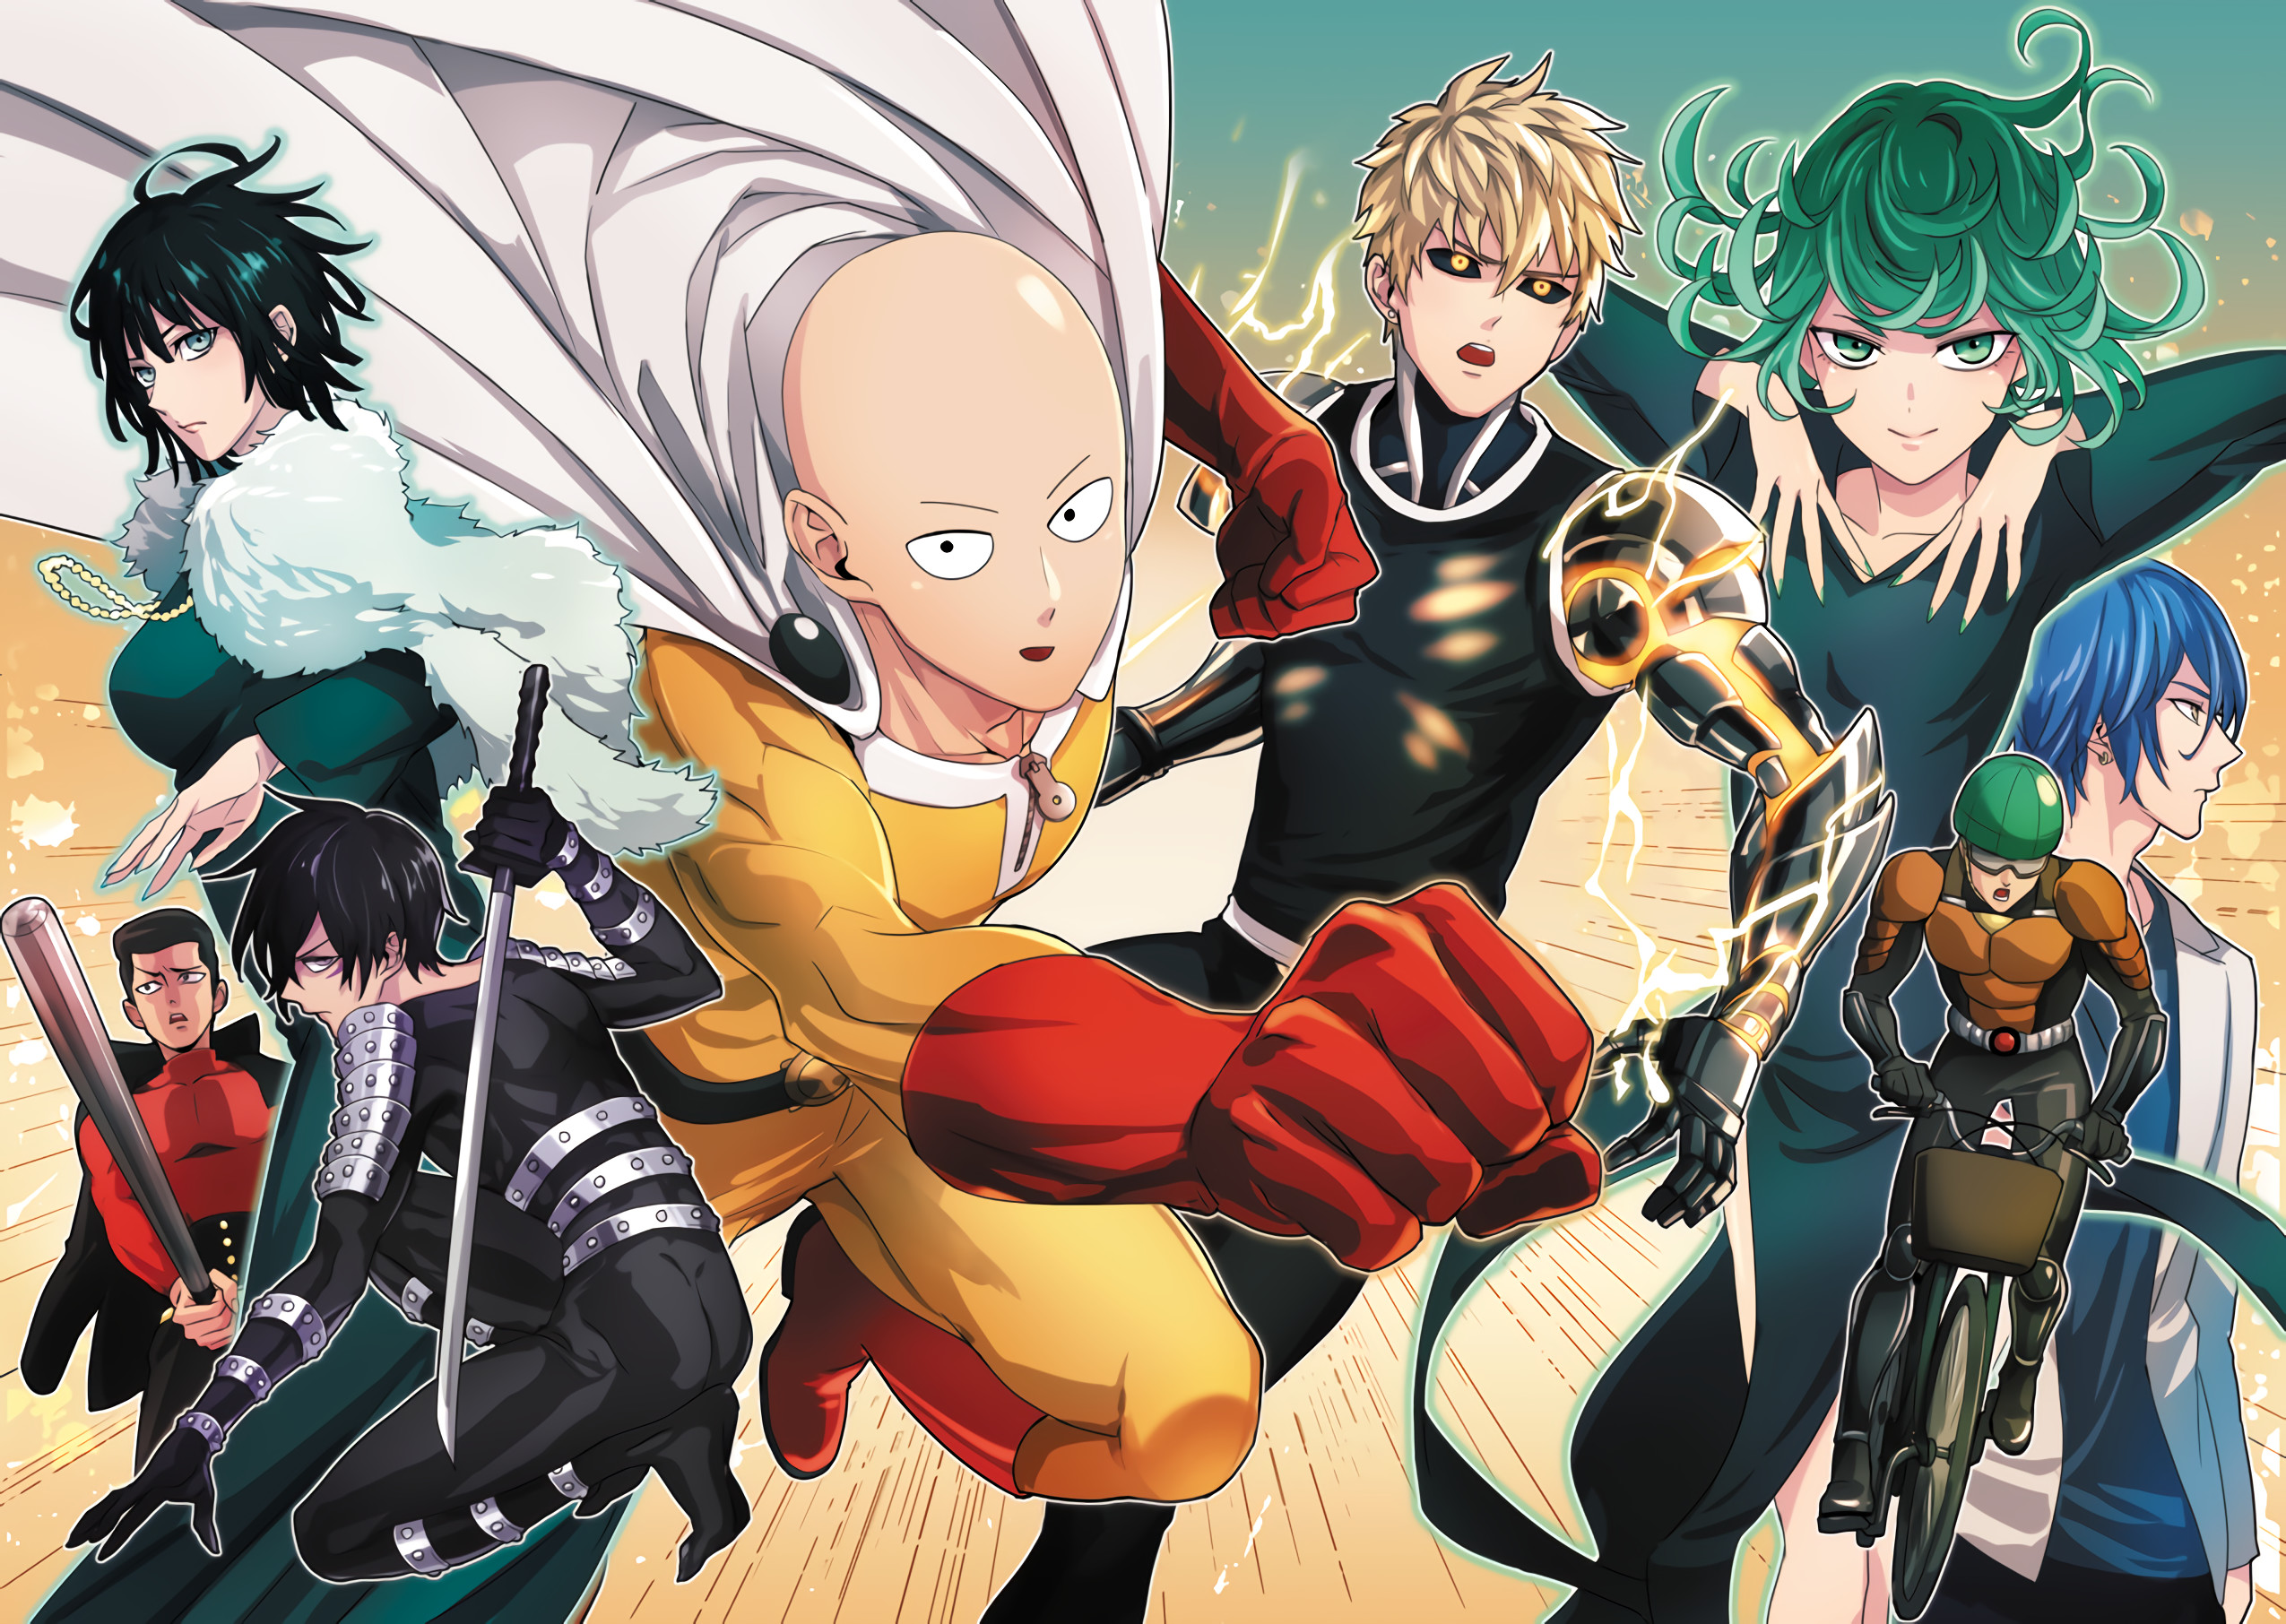 Cosplay Fubuki One Punch Man Tatsumaki A Hd Wallpaper